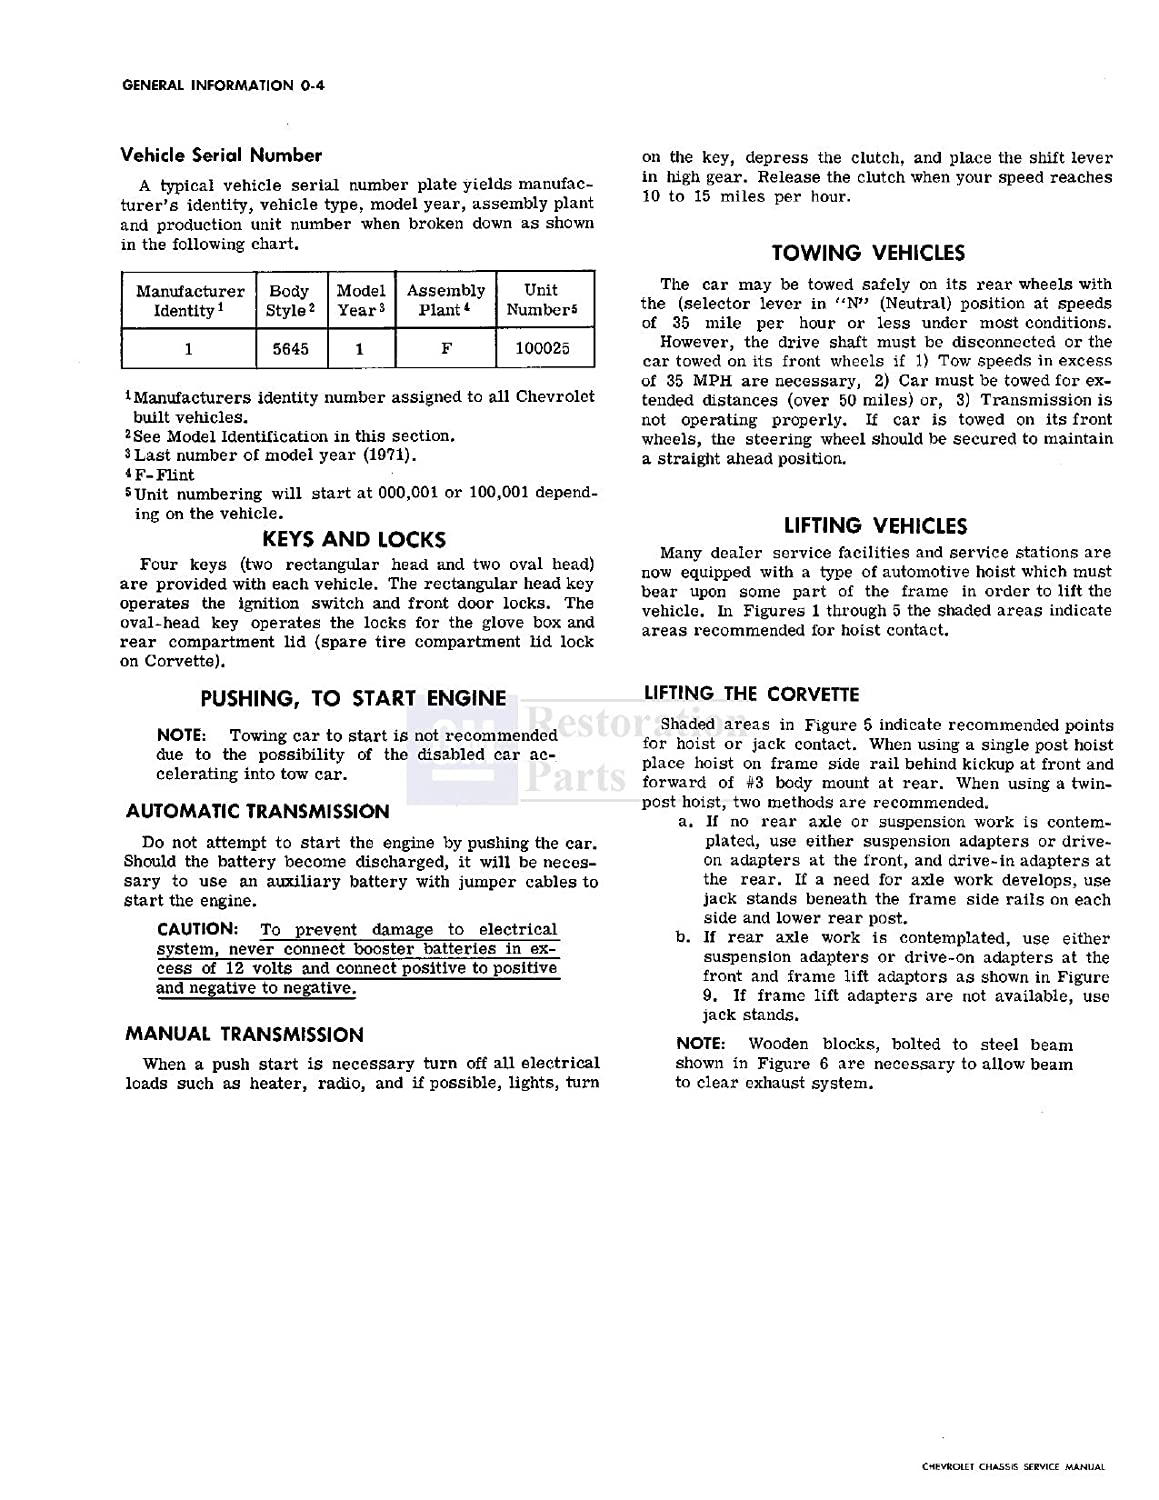 1971 El Camino Wiring Diagram Re Chevelle List Electrical Question